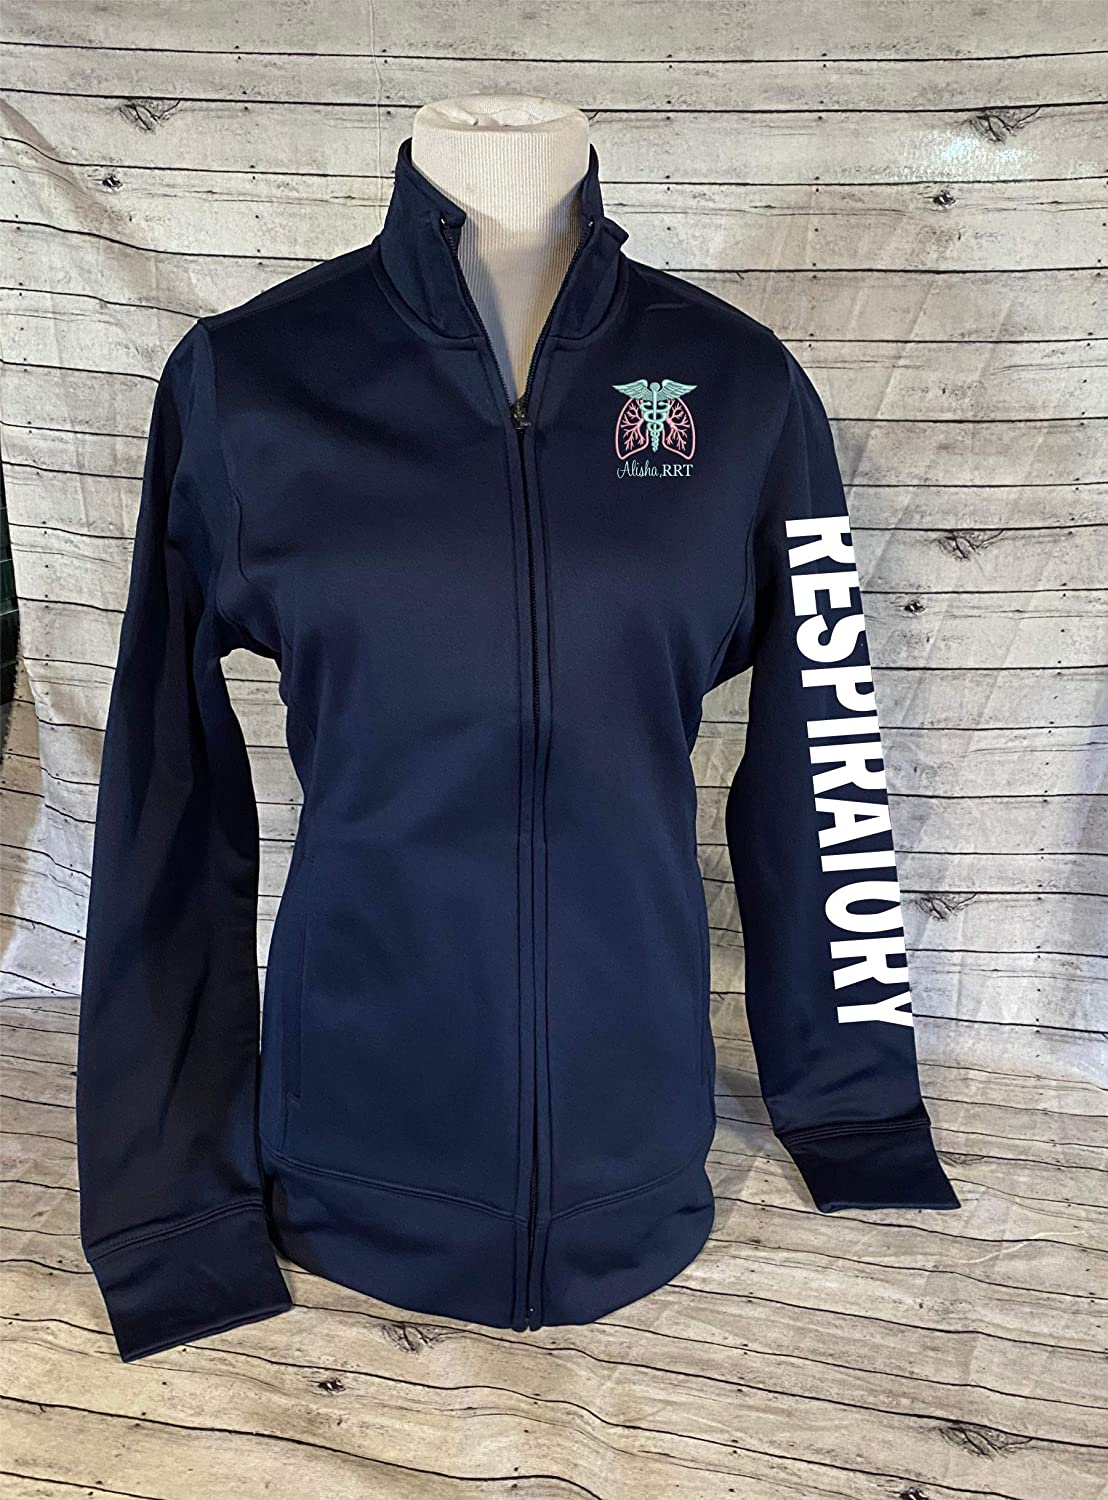 Ladies Personalized Full Austin Mall Zip Jacket Respiratory Therapist Popular shop is the lowest price challenge Nurse